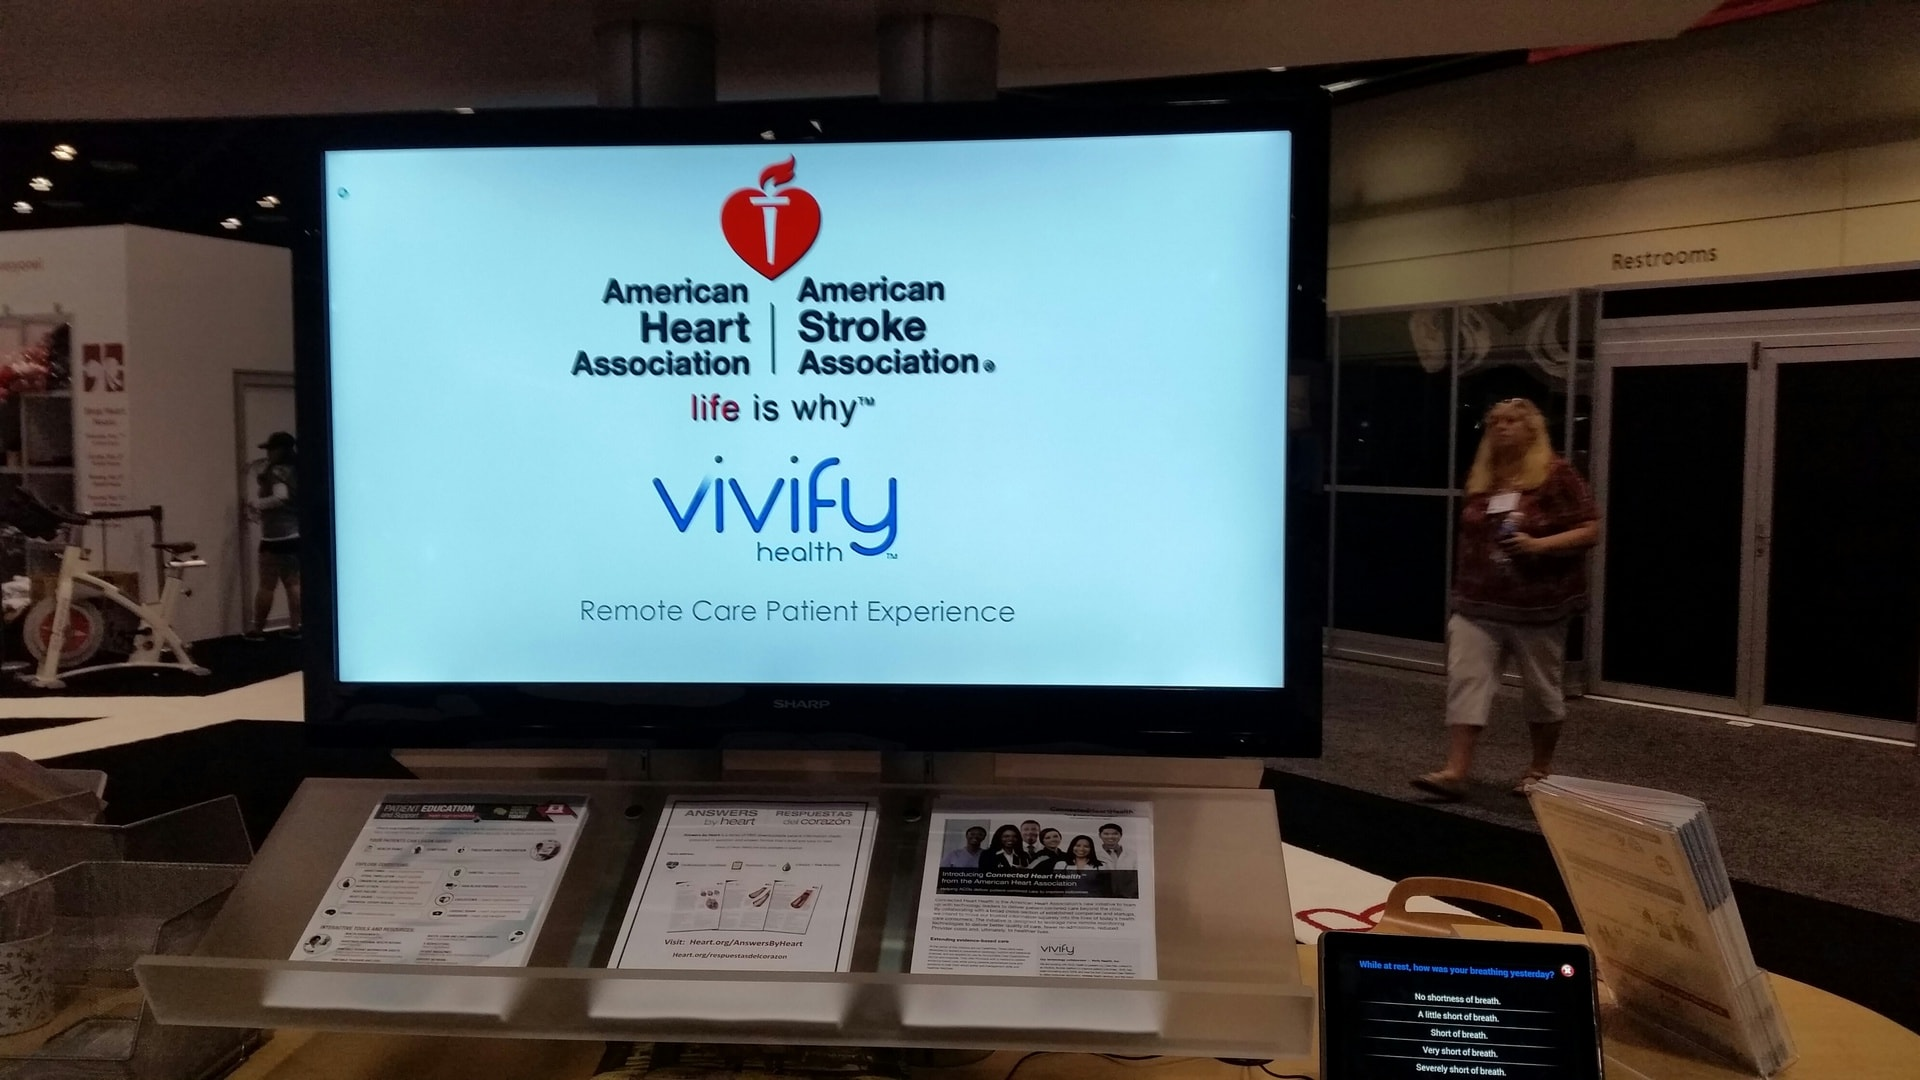 Come see Vivify Health at AHA Scientific Sessions '15 in Orlando.  Look for us in the AHA Heart Quarters.